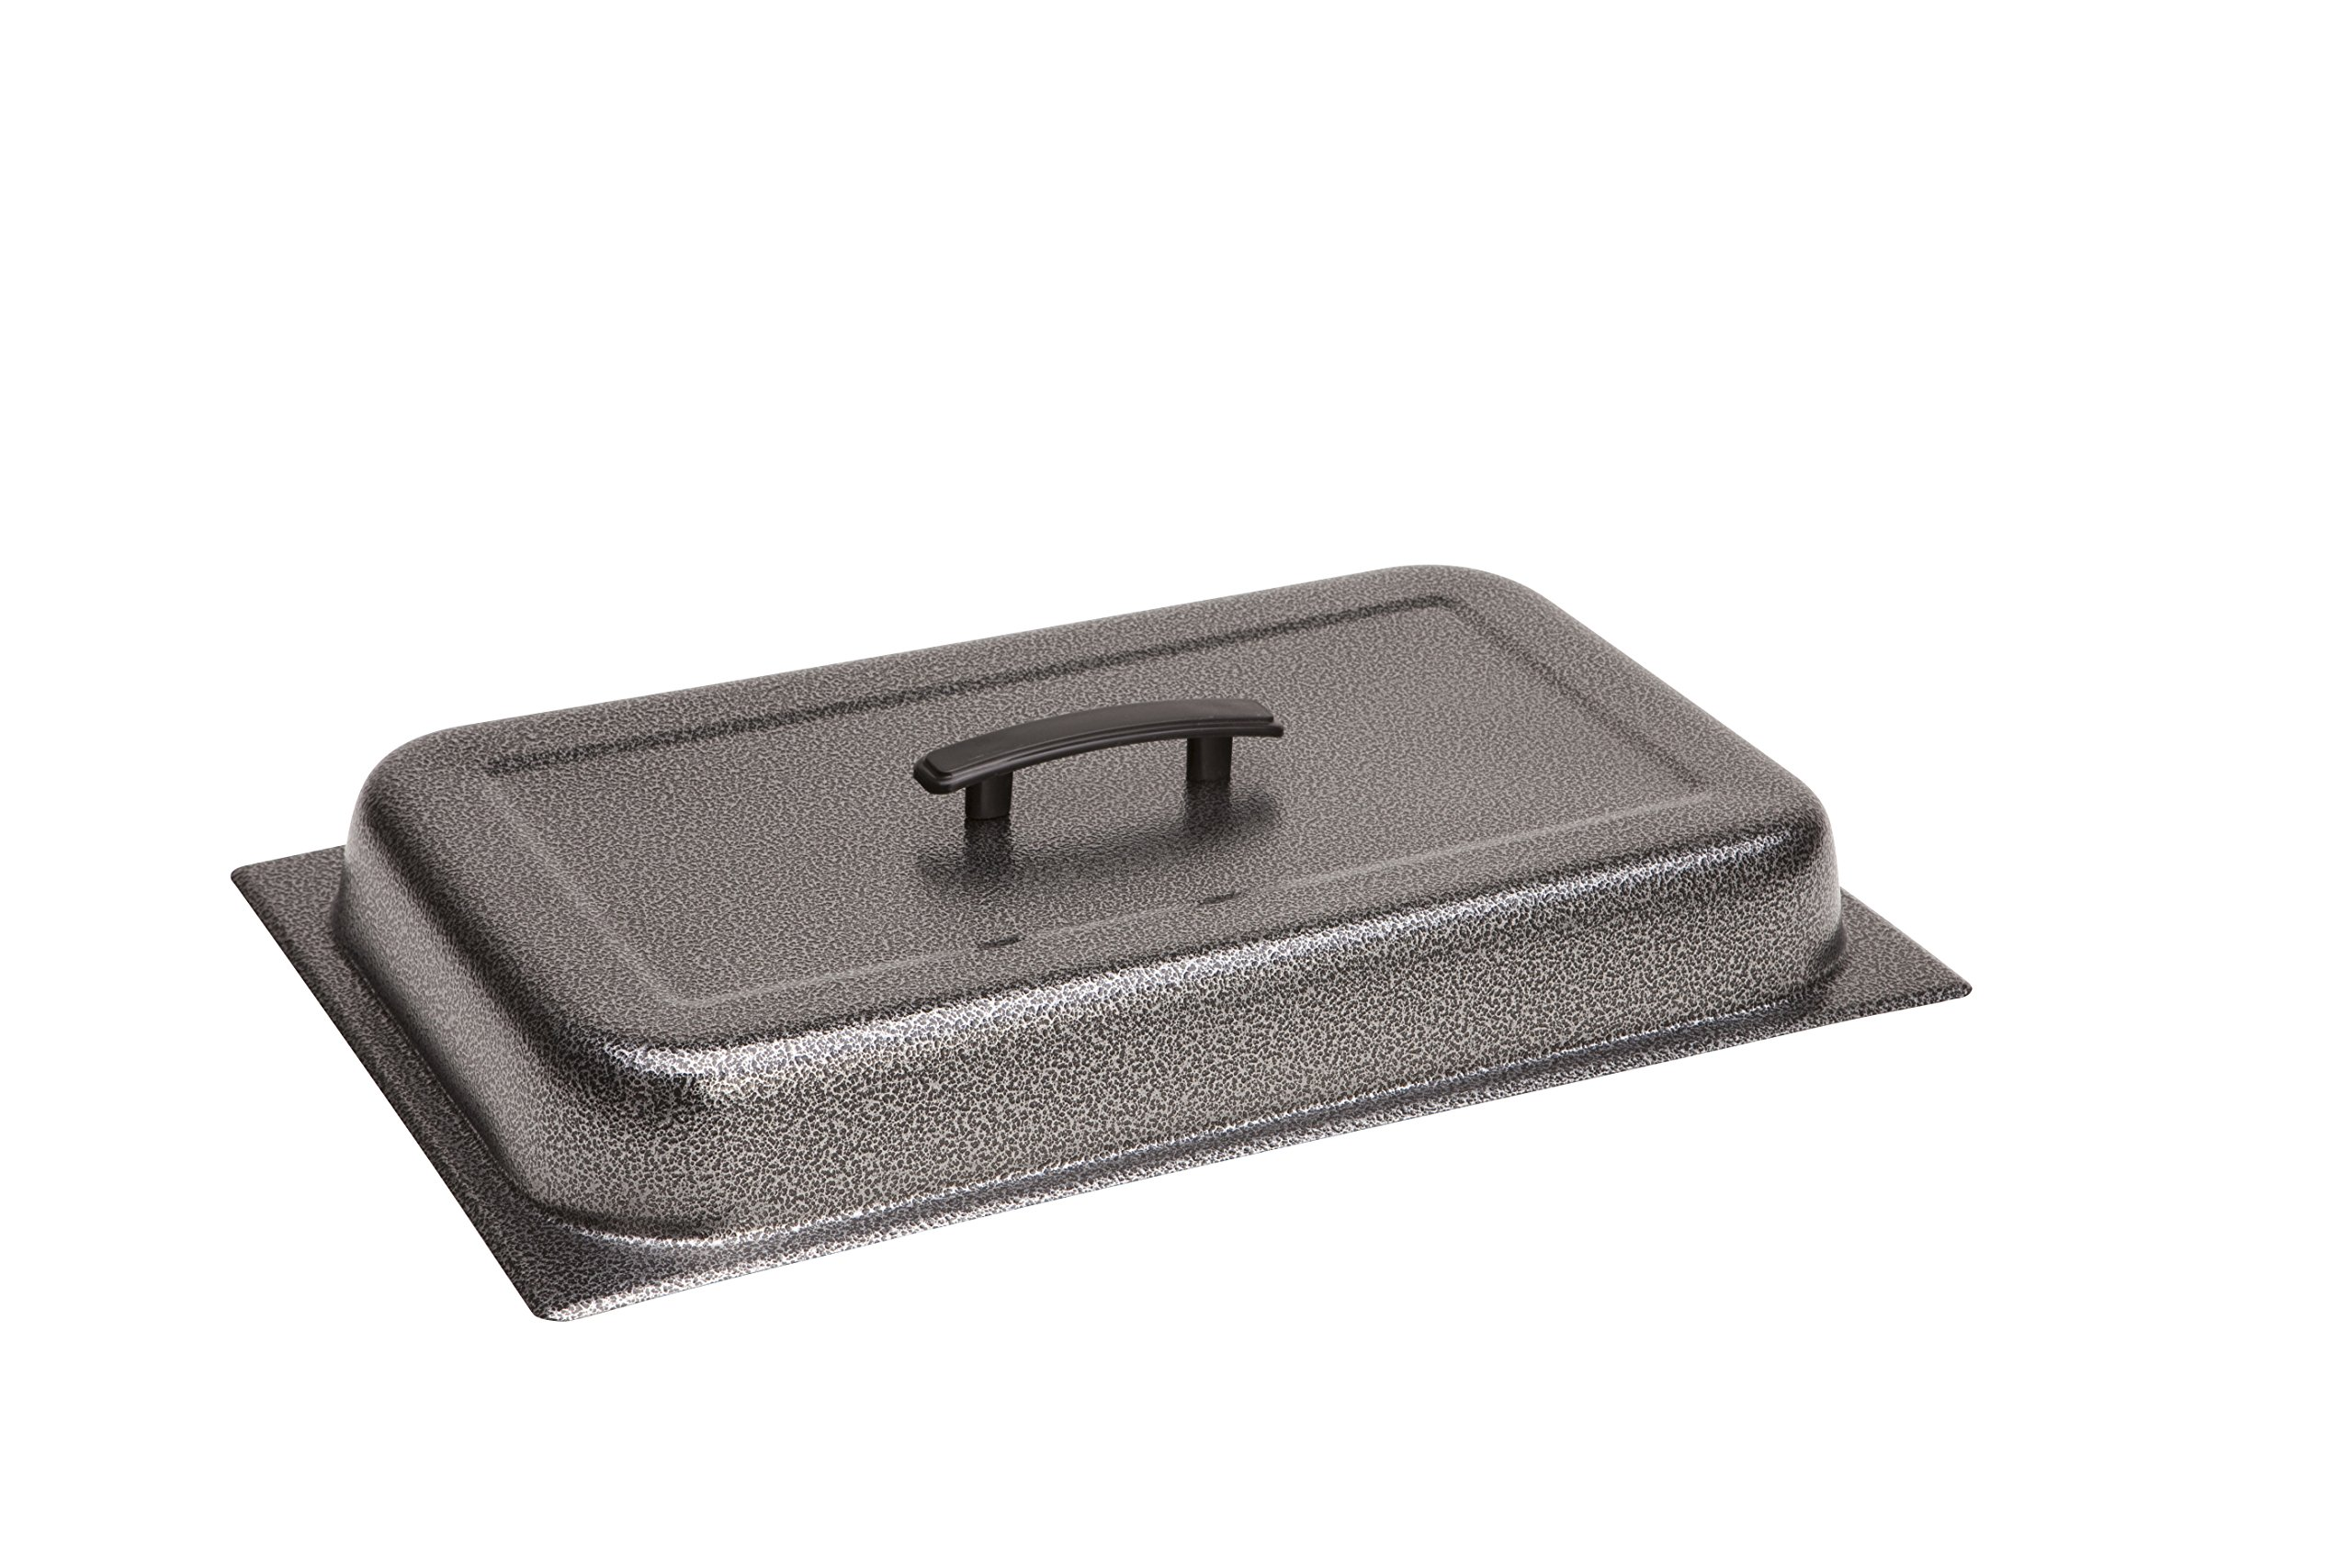 Sterno 70114 WindGuard Chafing Dish Lid, Silver Vein by Sterno